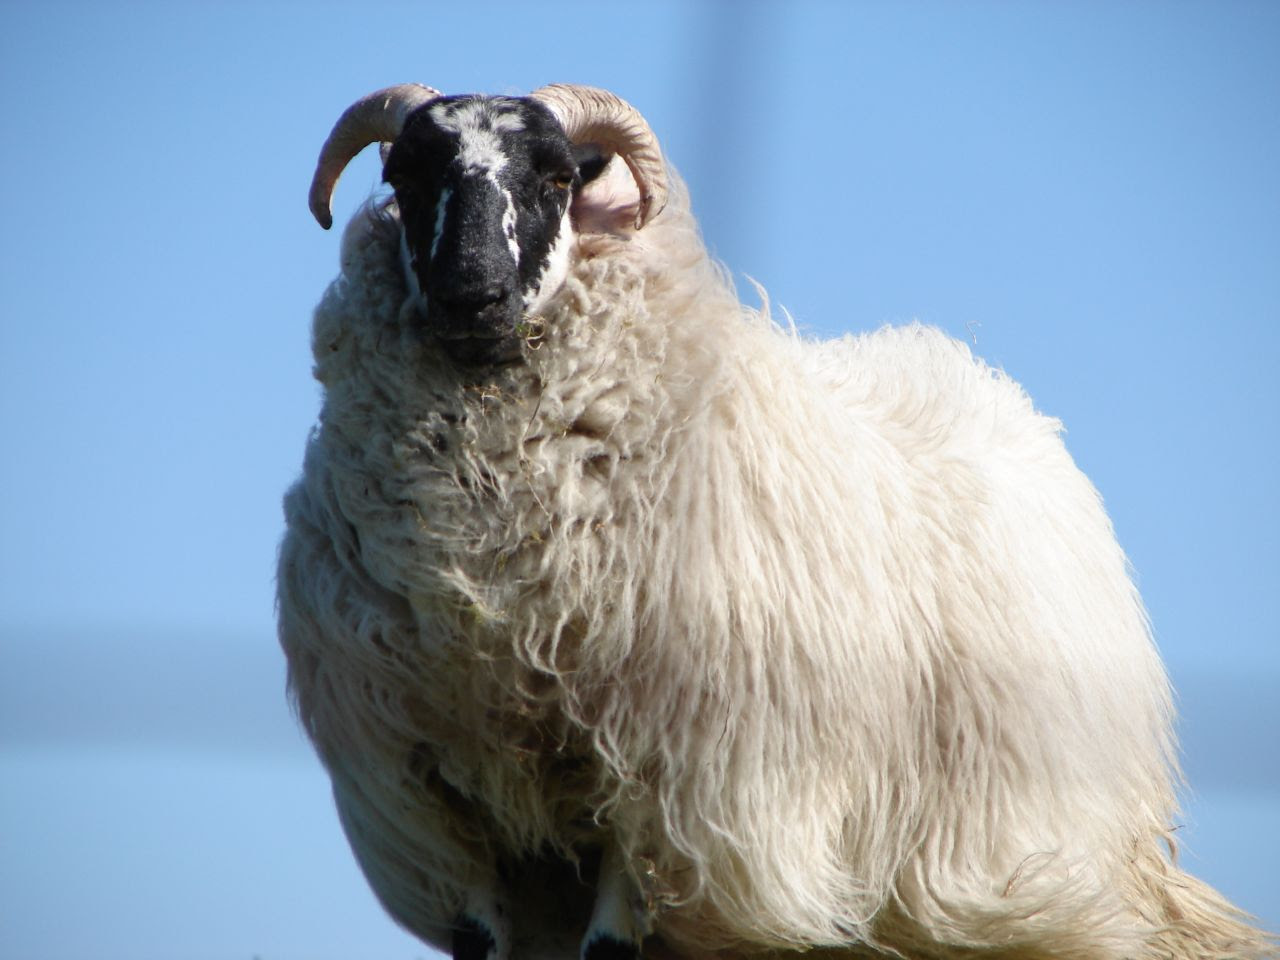 http://upload.wikimedia.org/wikipedia/commons/a/ab/Sheep_on_the_isle_of_Lewis.jpg